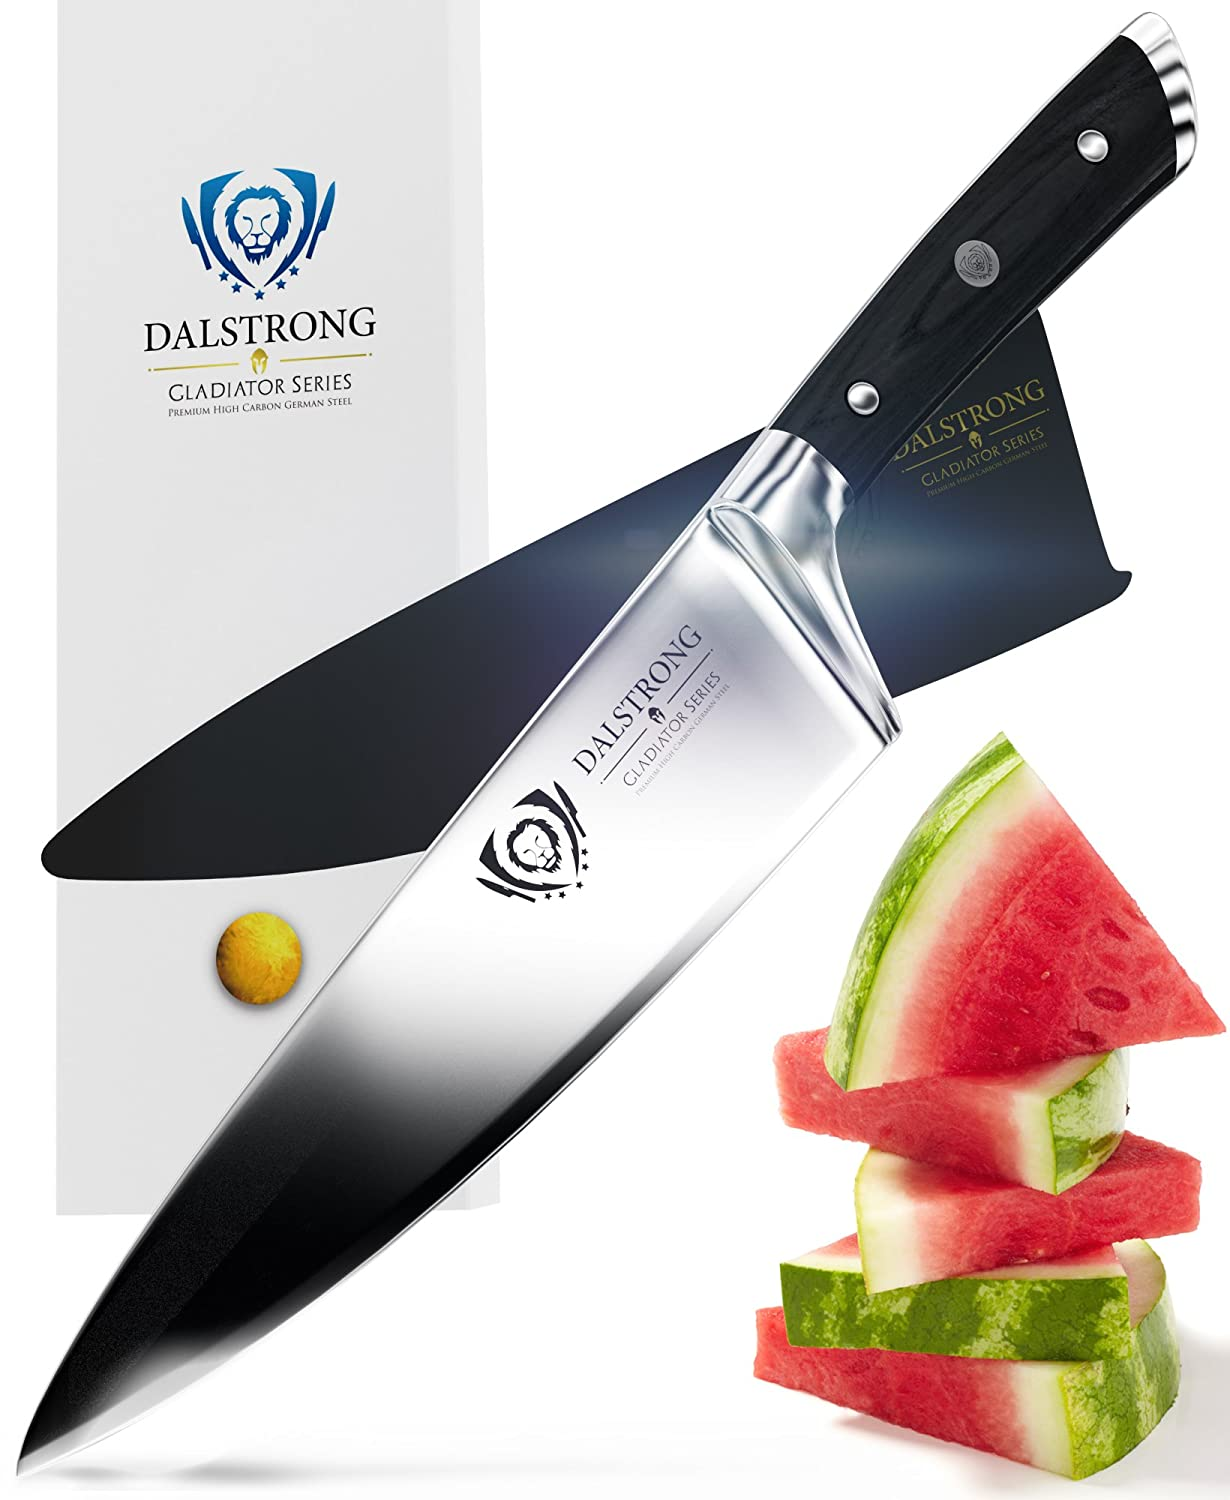 DALSTRONG Chef Knife - Gladiator Series